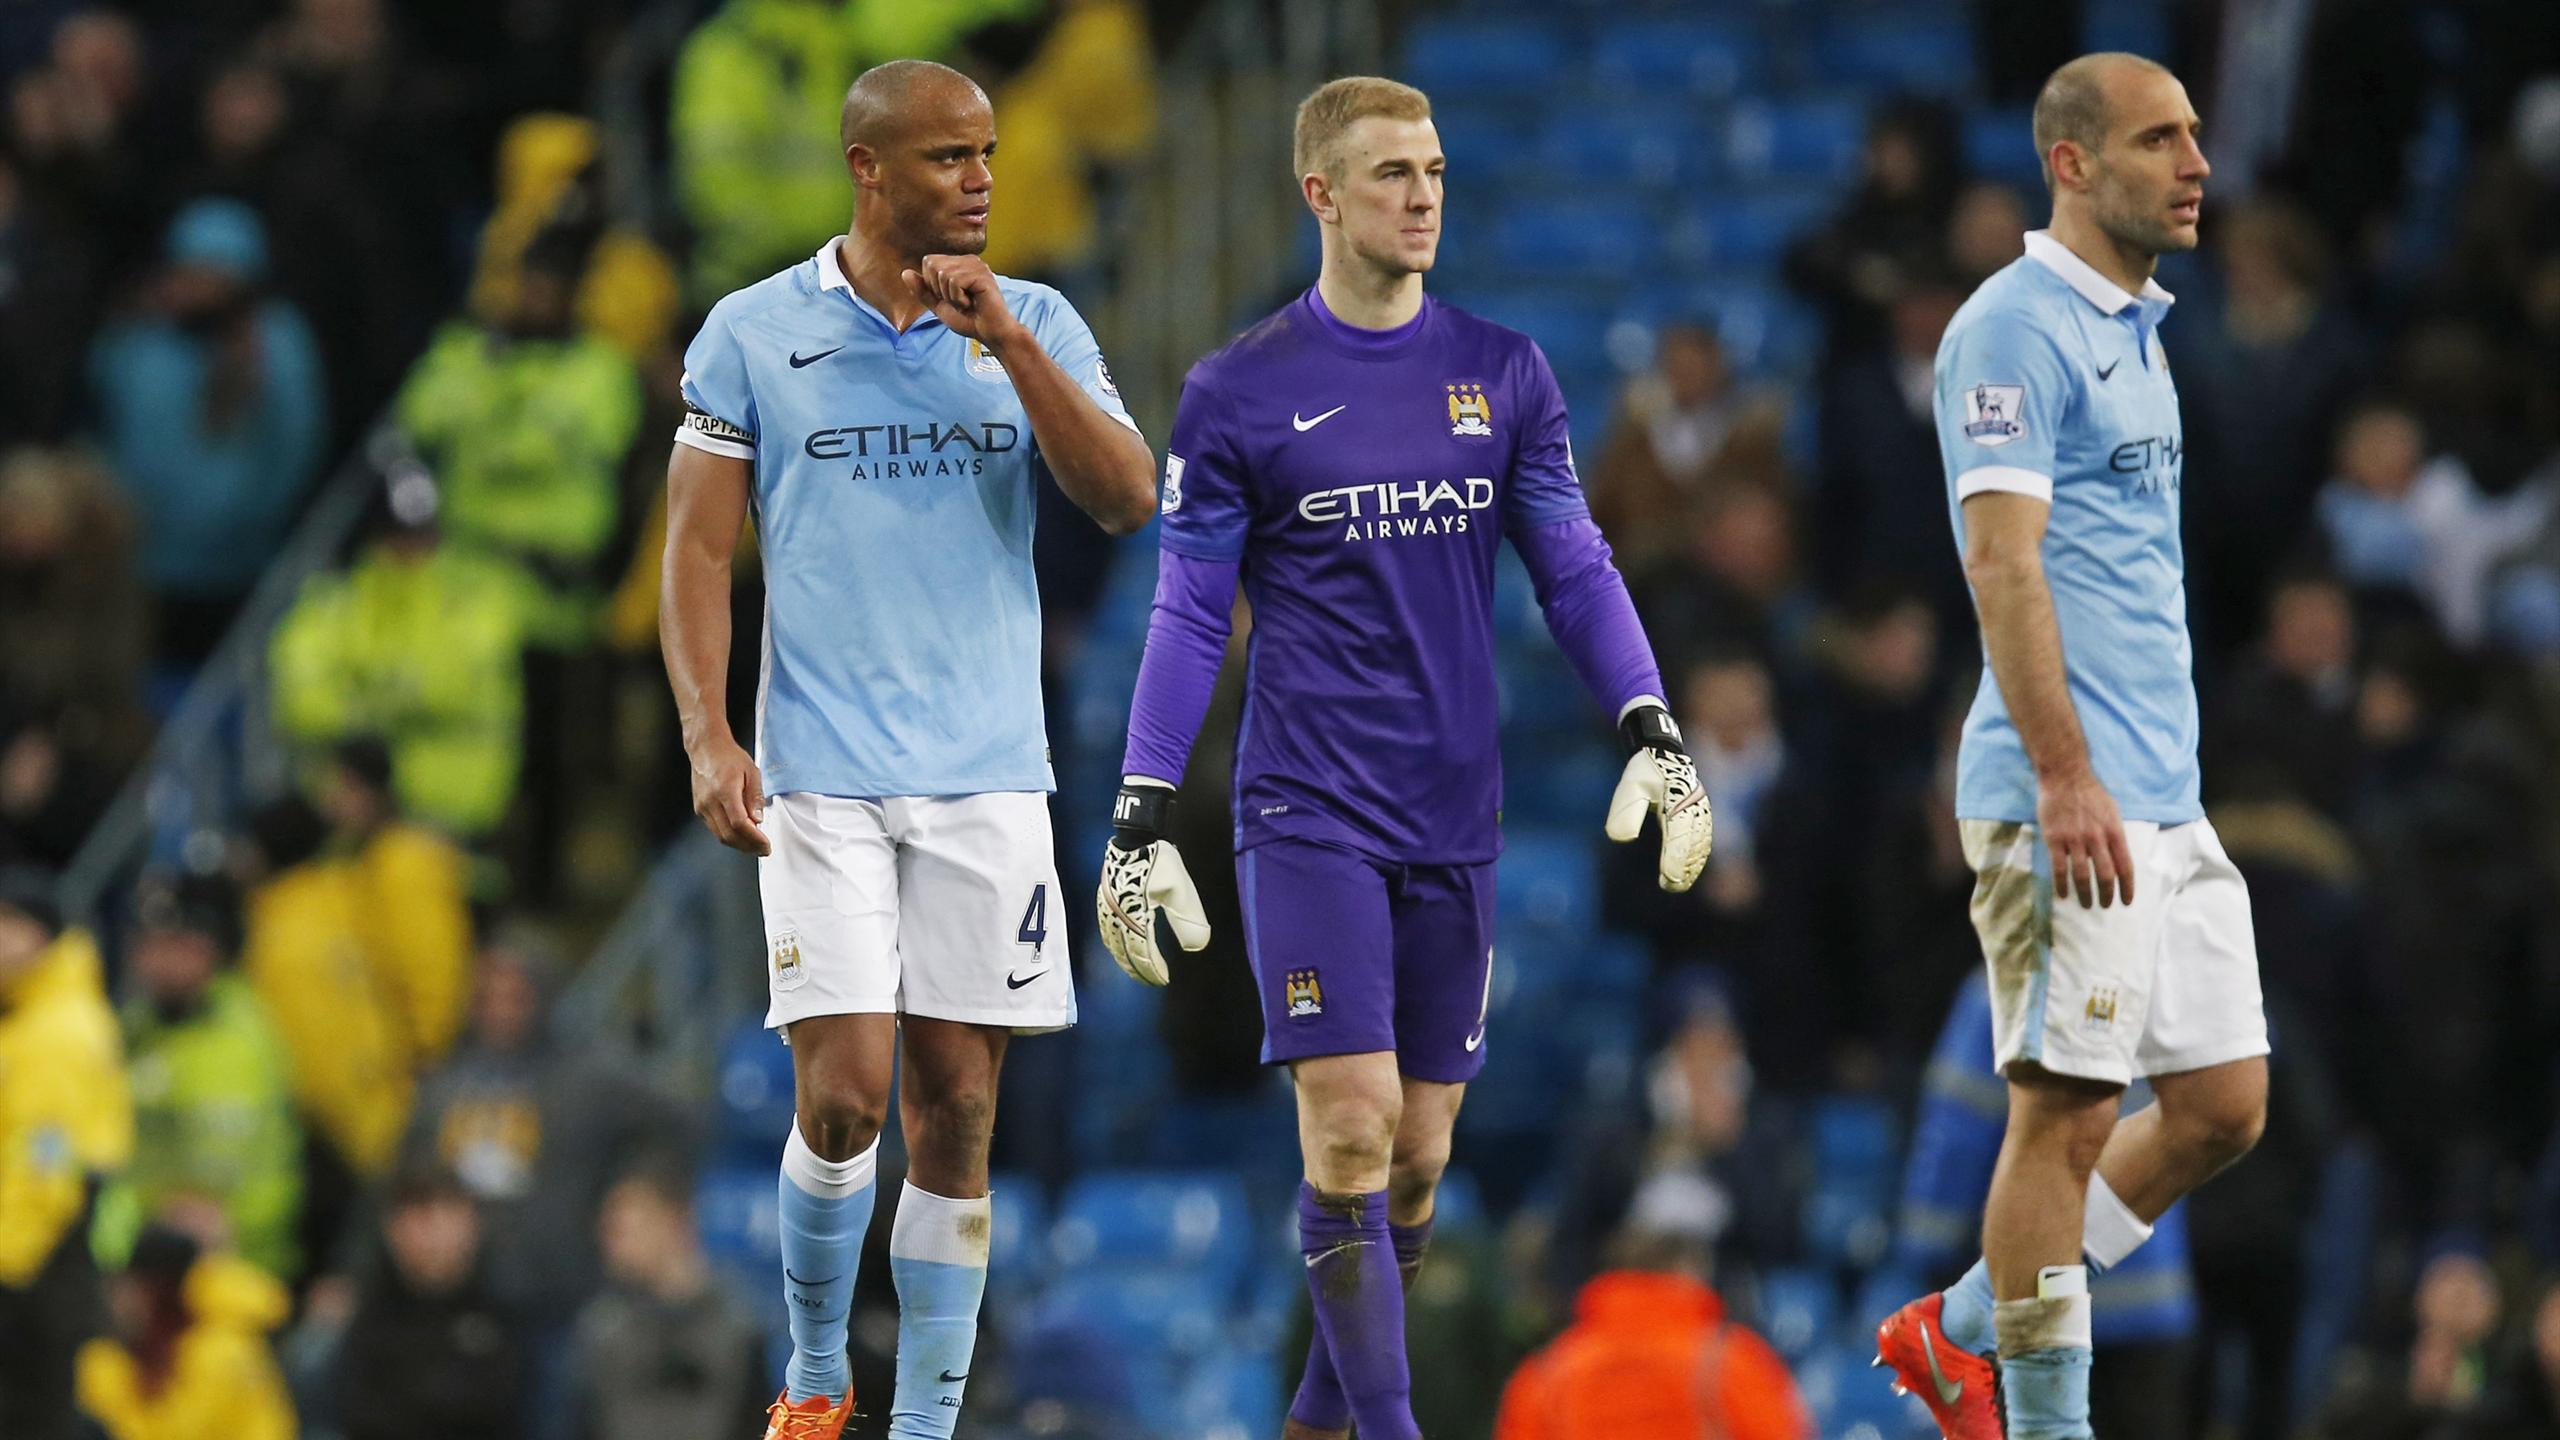 Manchester City's Vincent Kompany, Joe Hart and Pablo Zabaleta look dejected at the end of the match